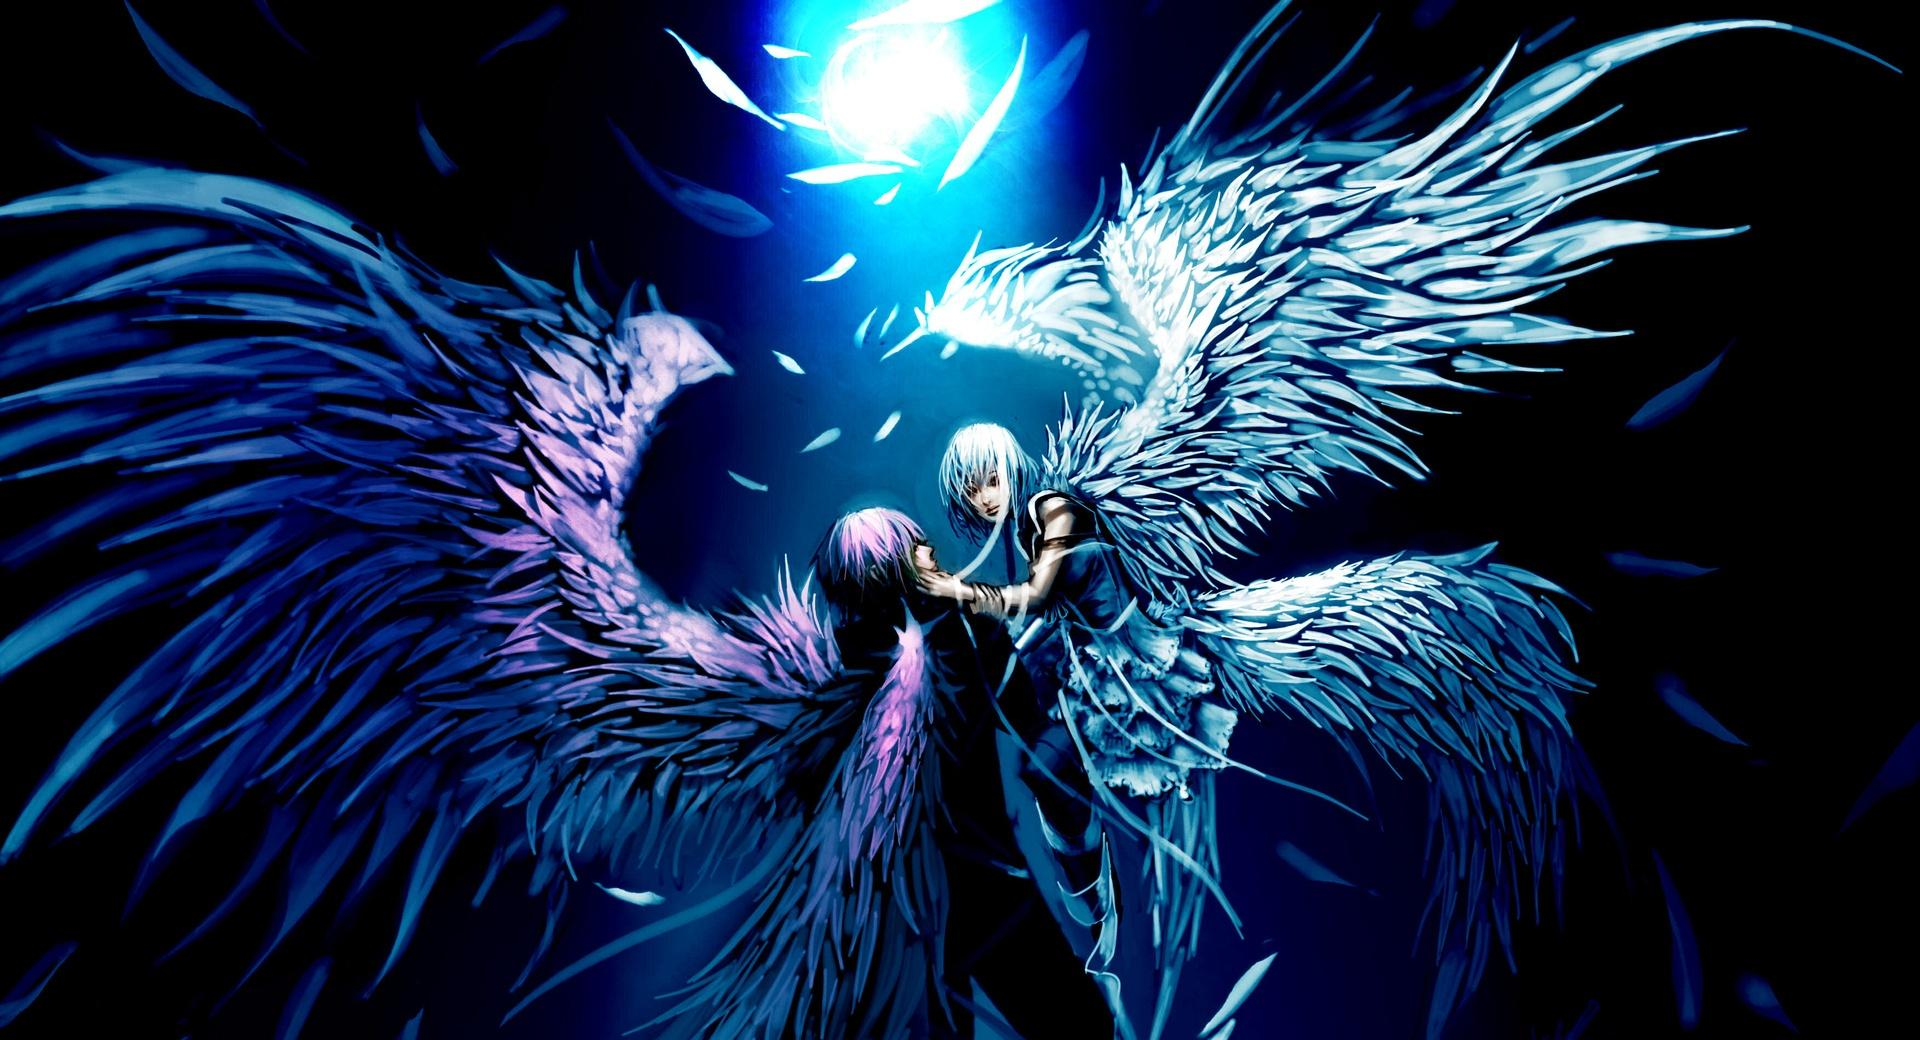 Two Angels Love Anime wallpapers HD quality